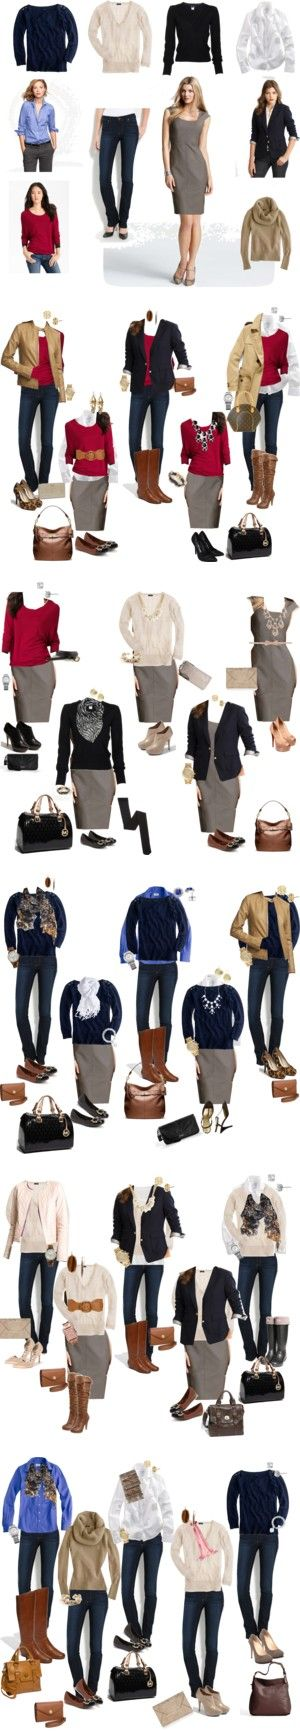 """10 piece outfits"" by regichka on Polyvore"